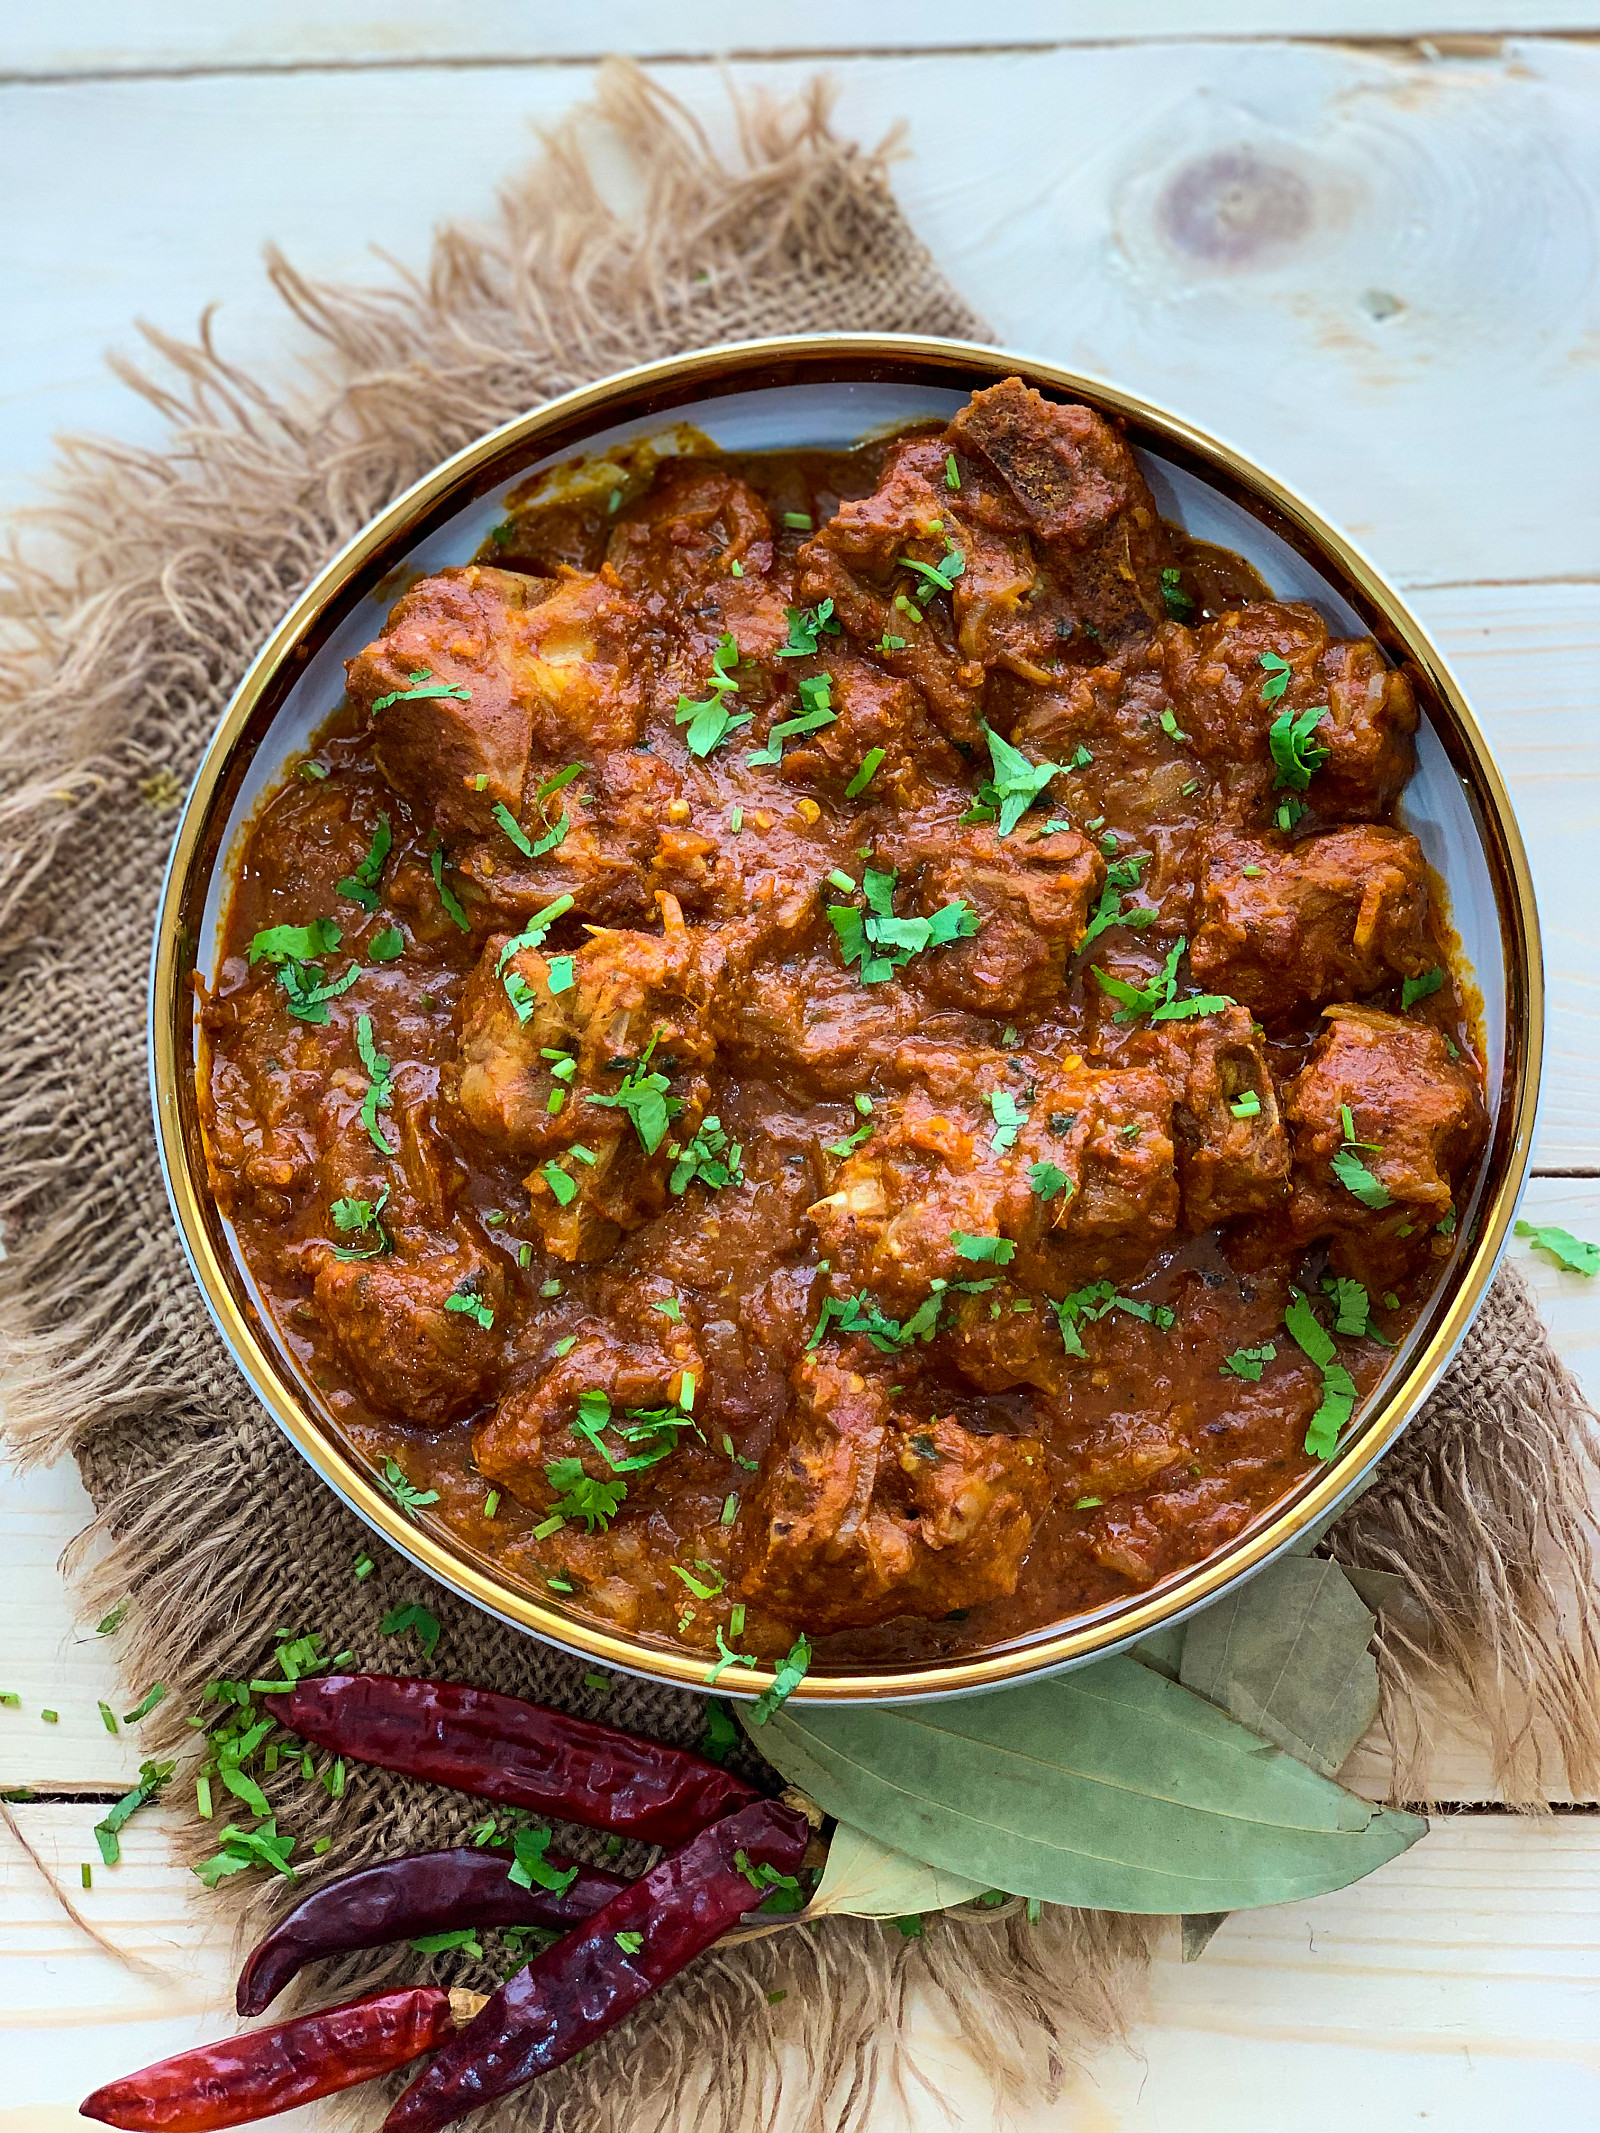 Rajasthani Laal Maas Recipe-Mutton In Red Spicy Gravy